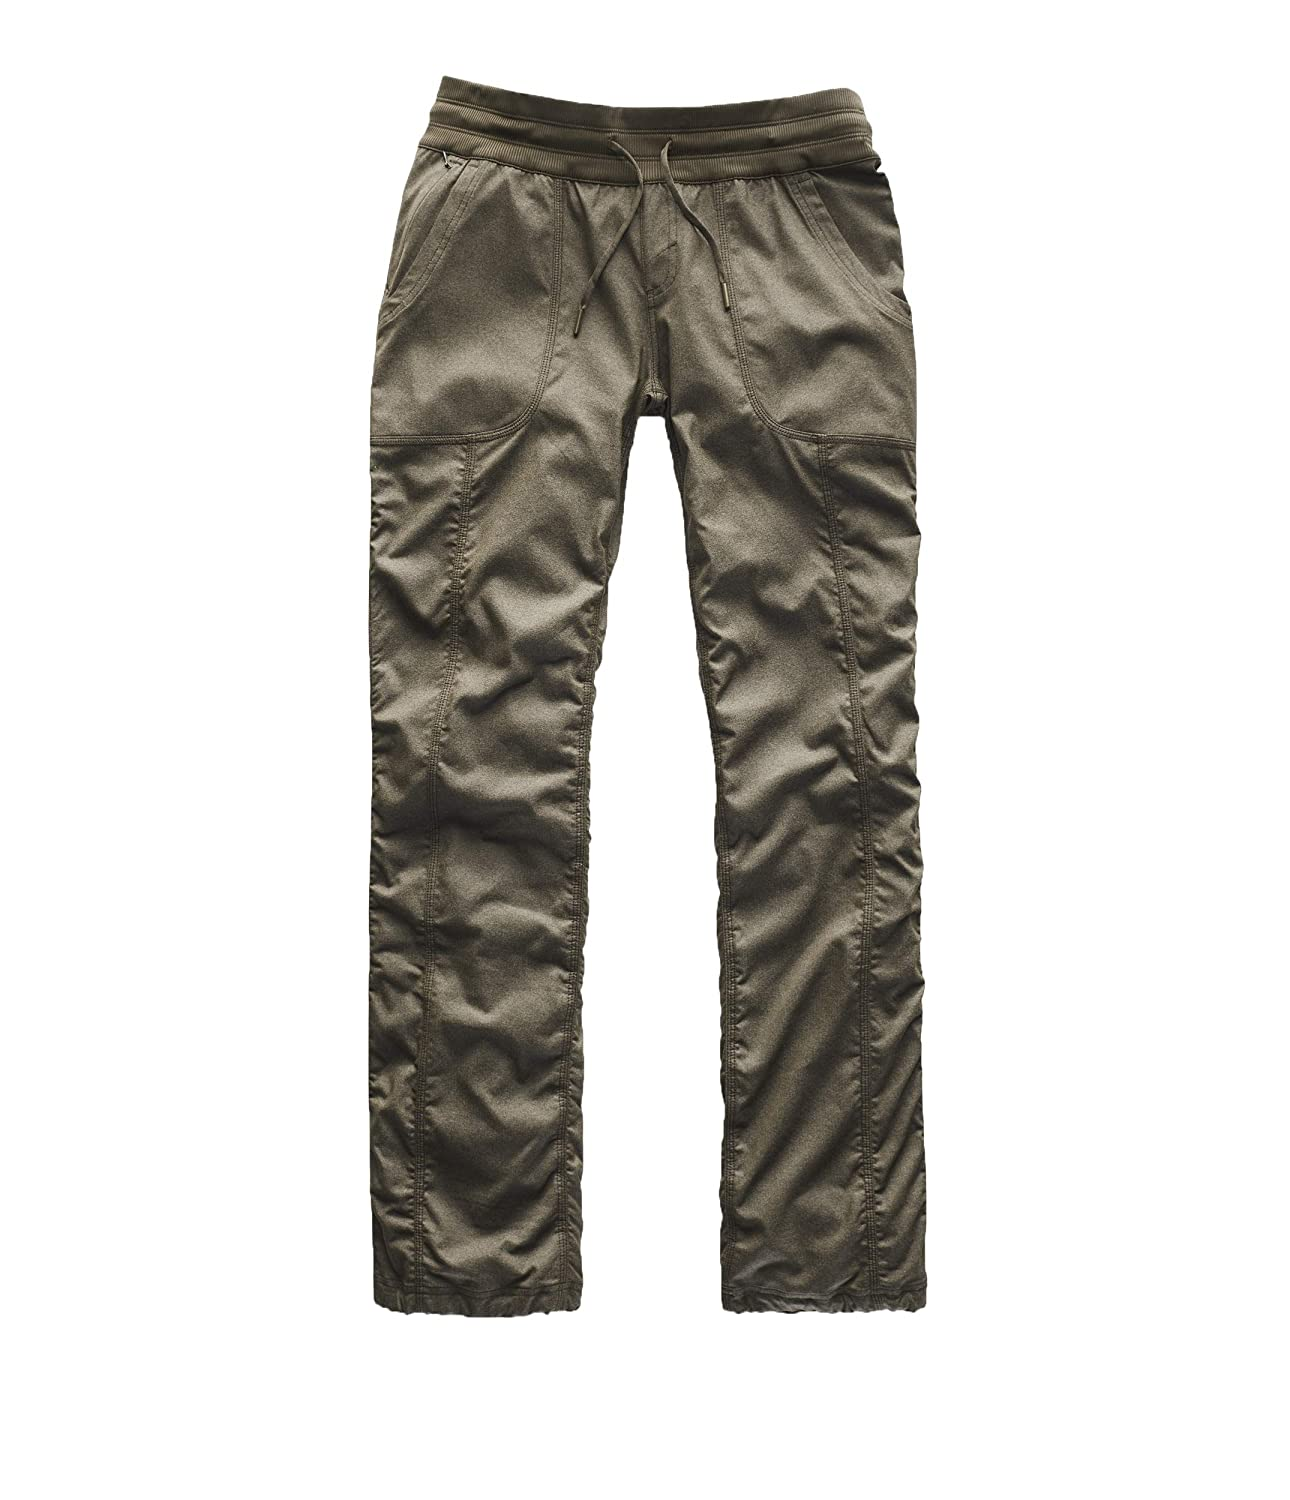 0efae439a9f The North Face Women s Aphrodite 2.0 Pant at Amazon Women s Clothing store